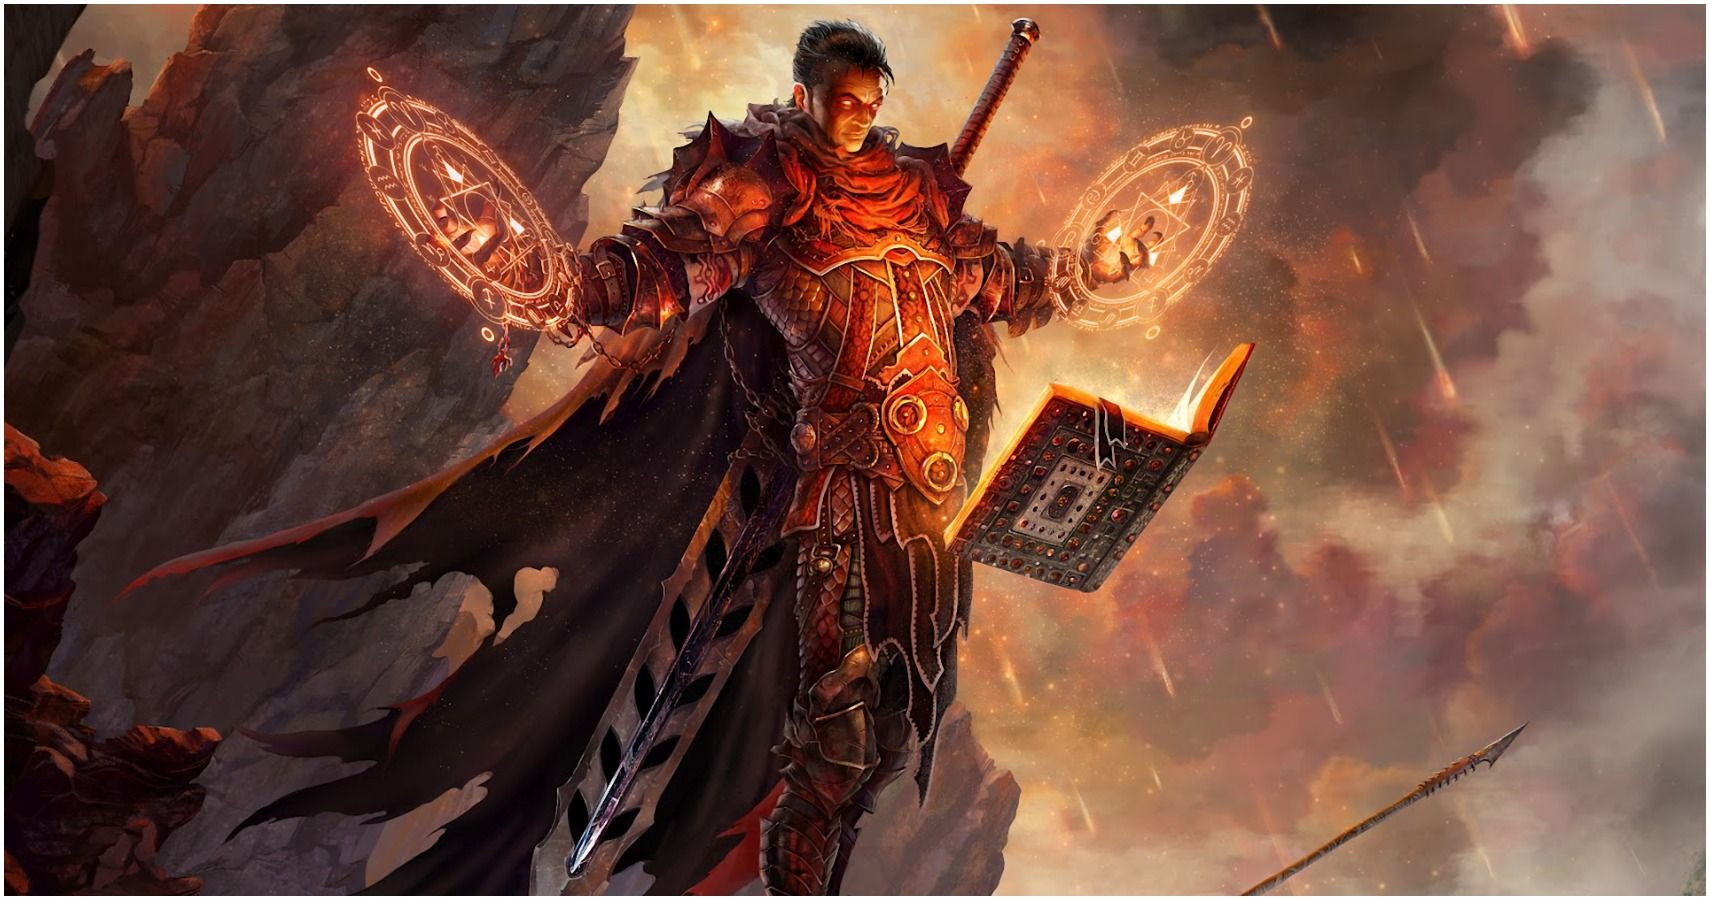 10 Tips To Make An Overpowered Sorcerer In Dungeons and Dragons